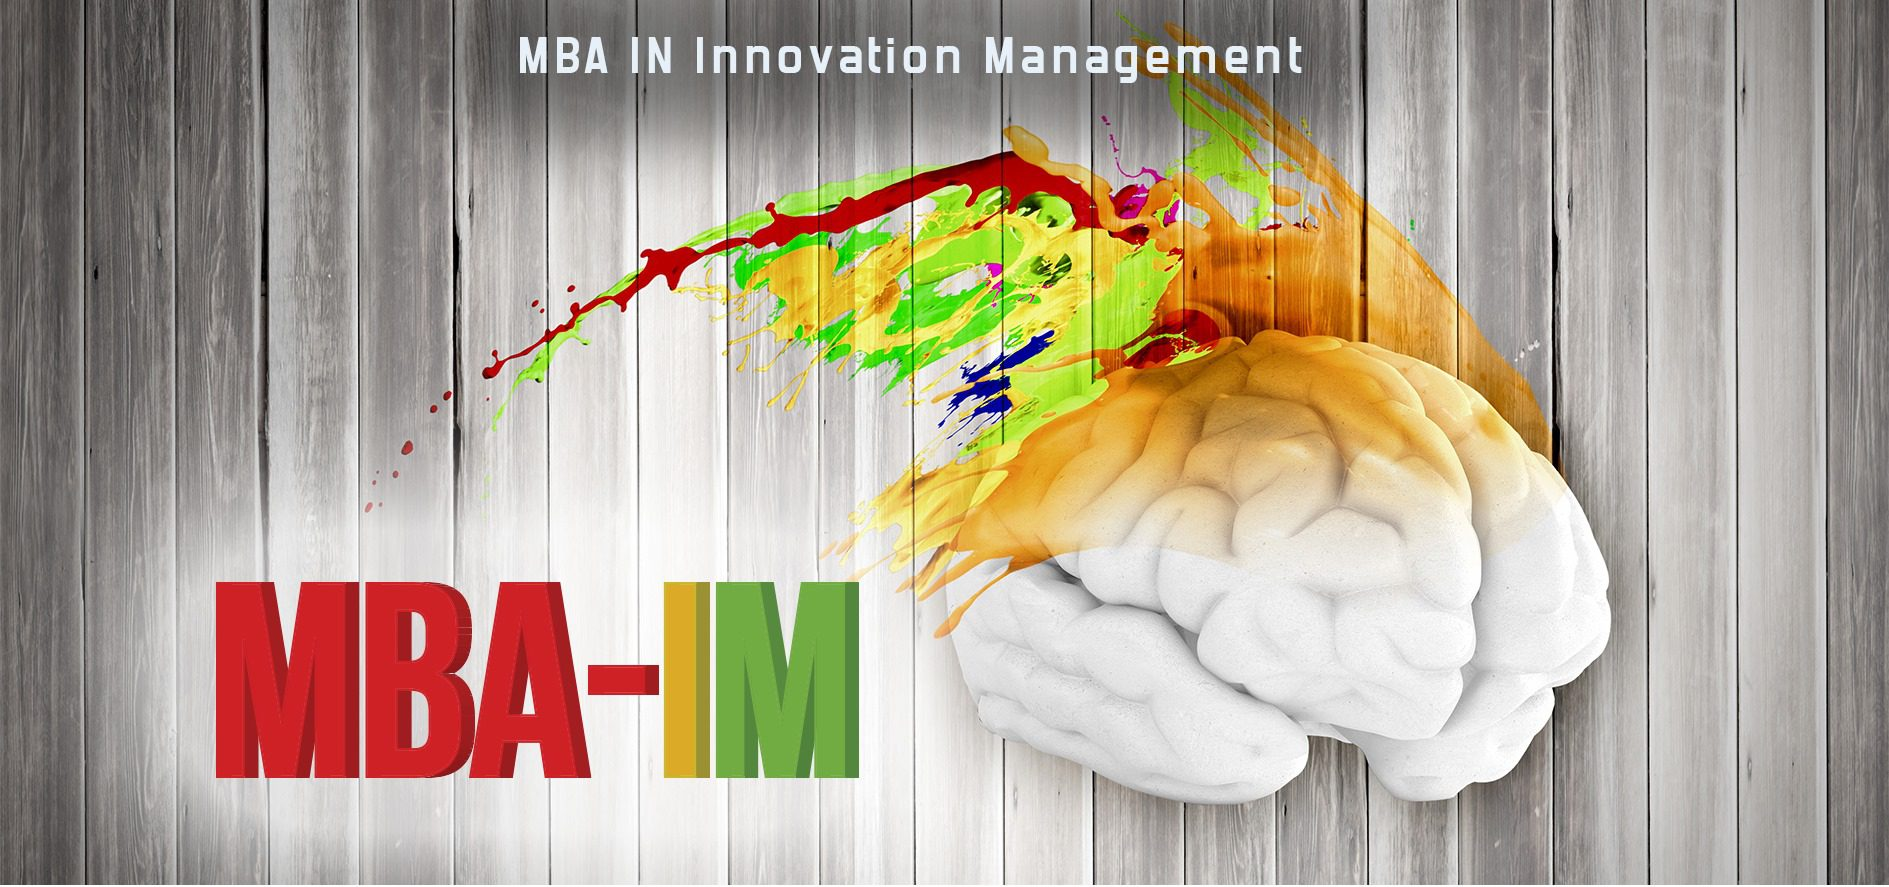 MBA In Innovation Management